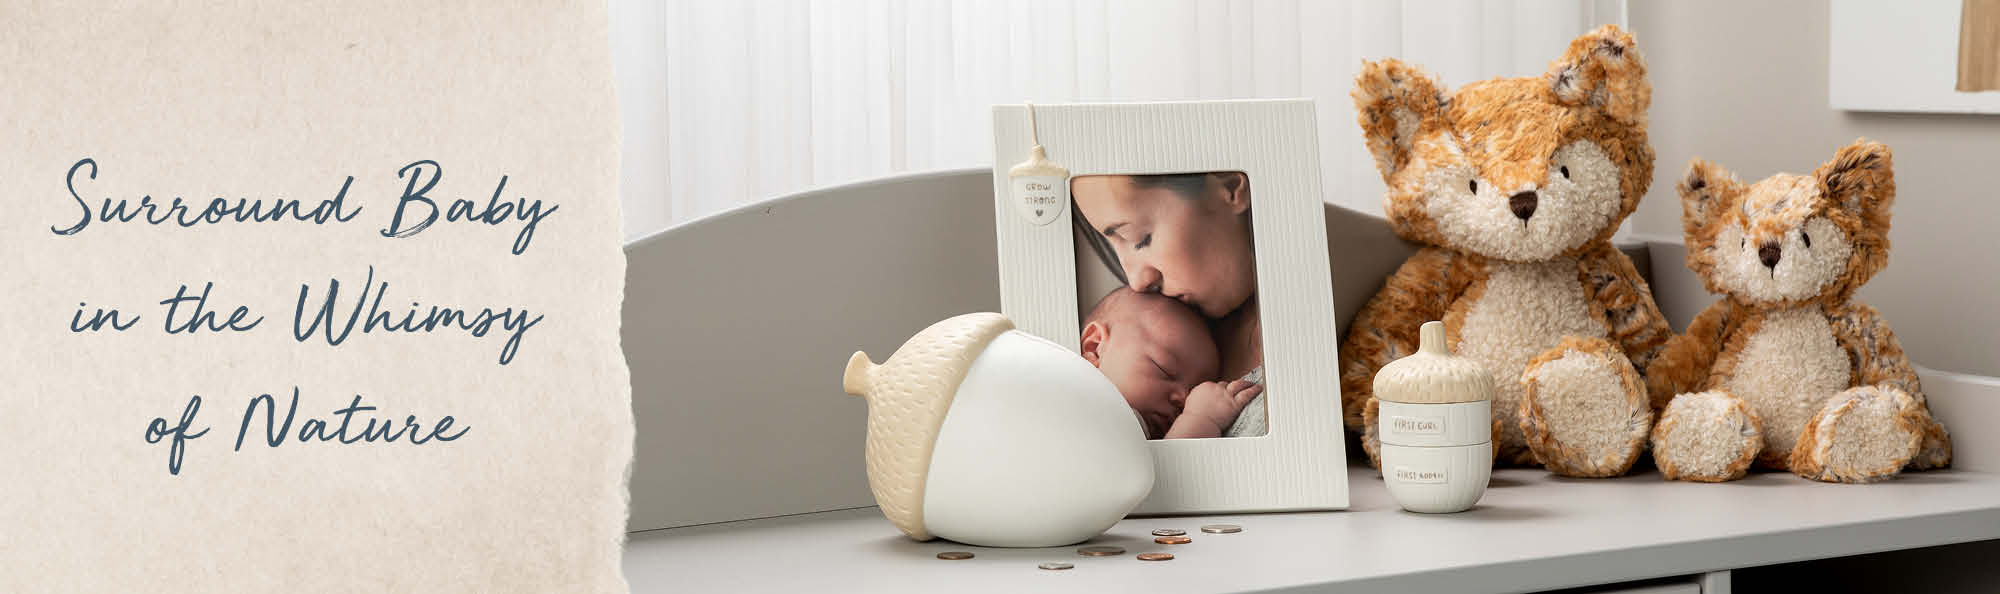 Surround Baby in the Whimsy of Nature. Stuffed fox animal and acorn decor in baby's room.